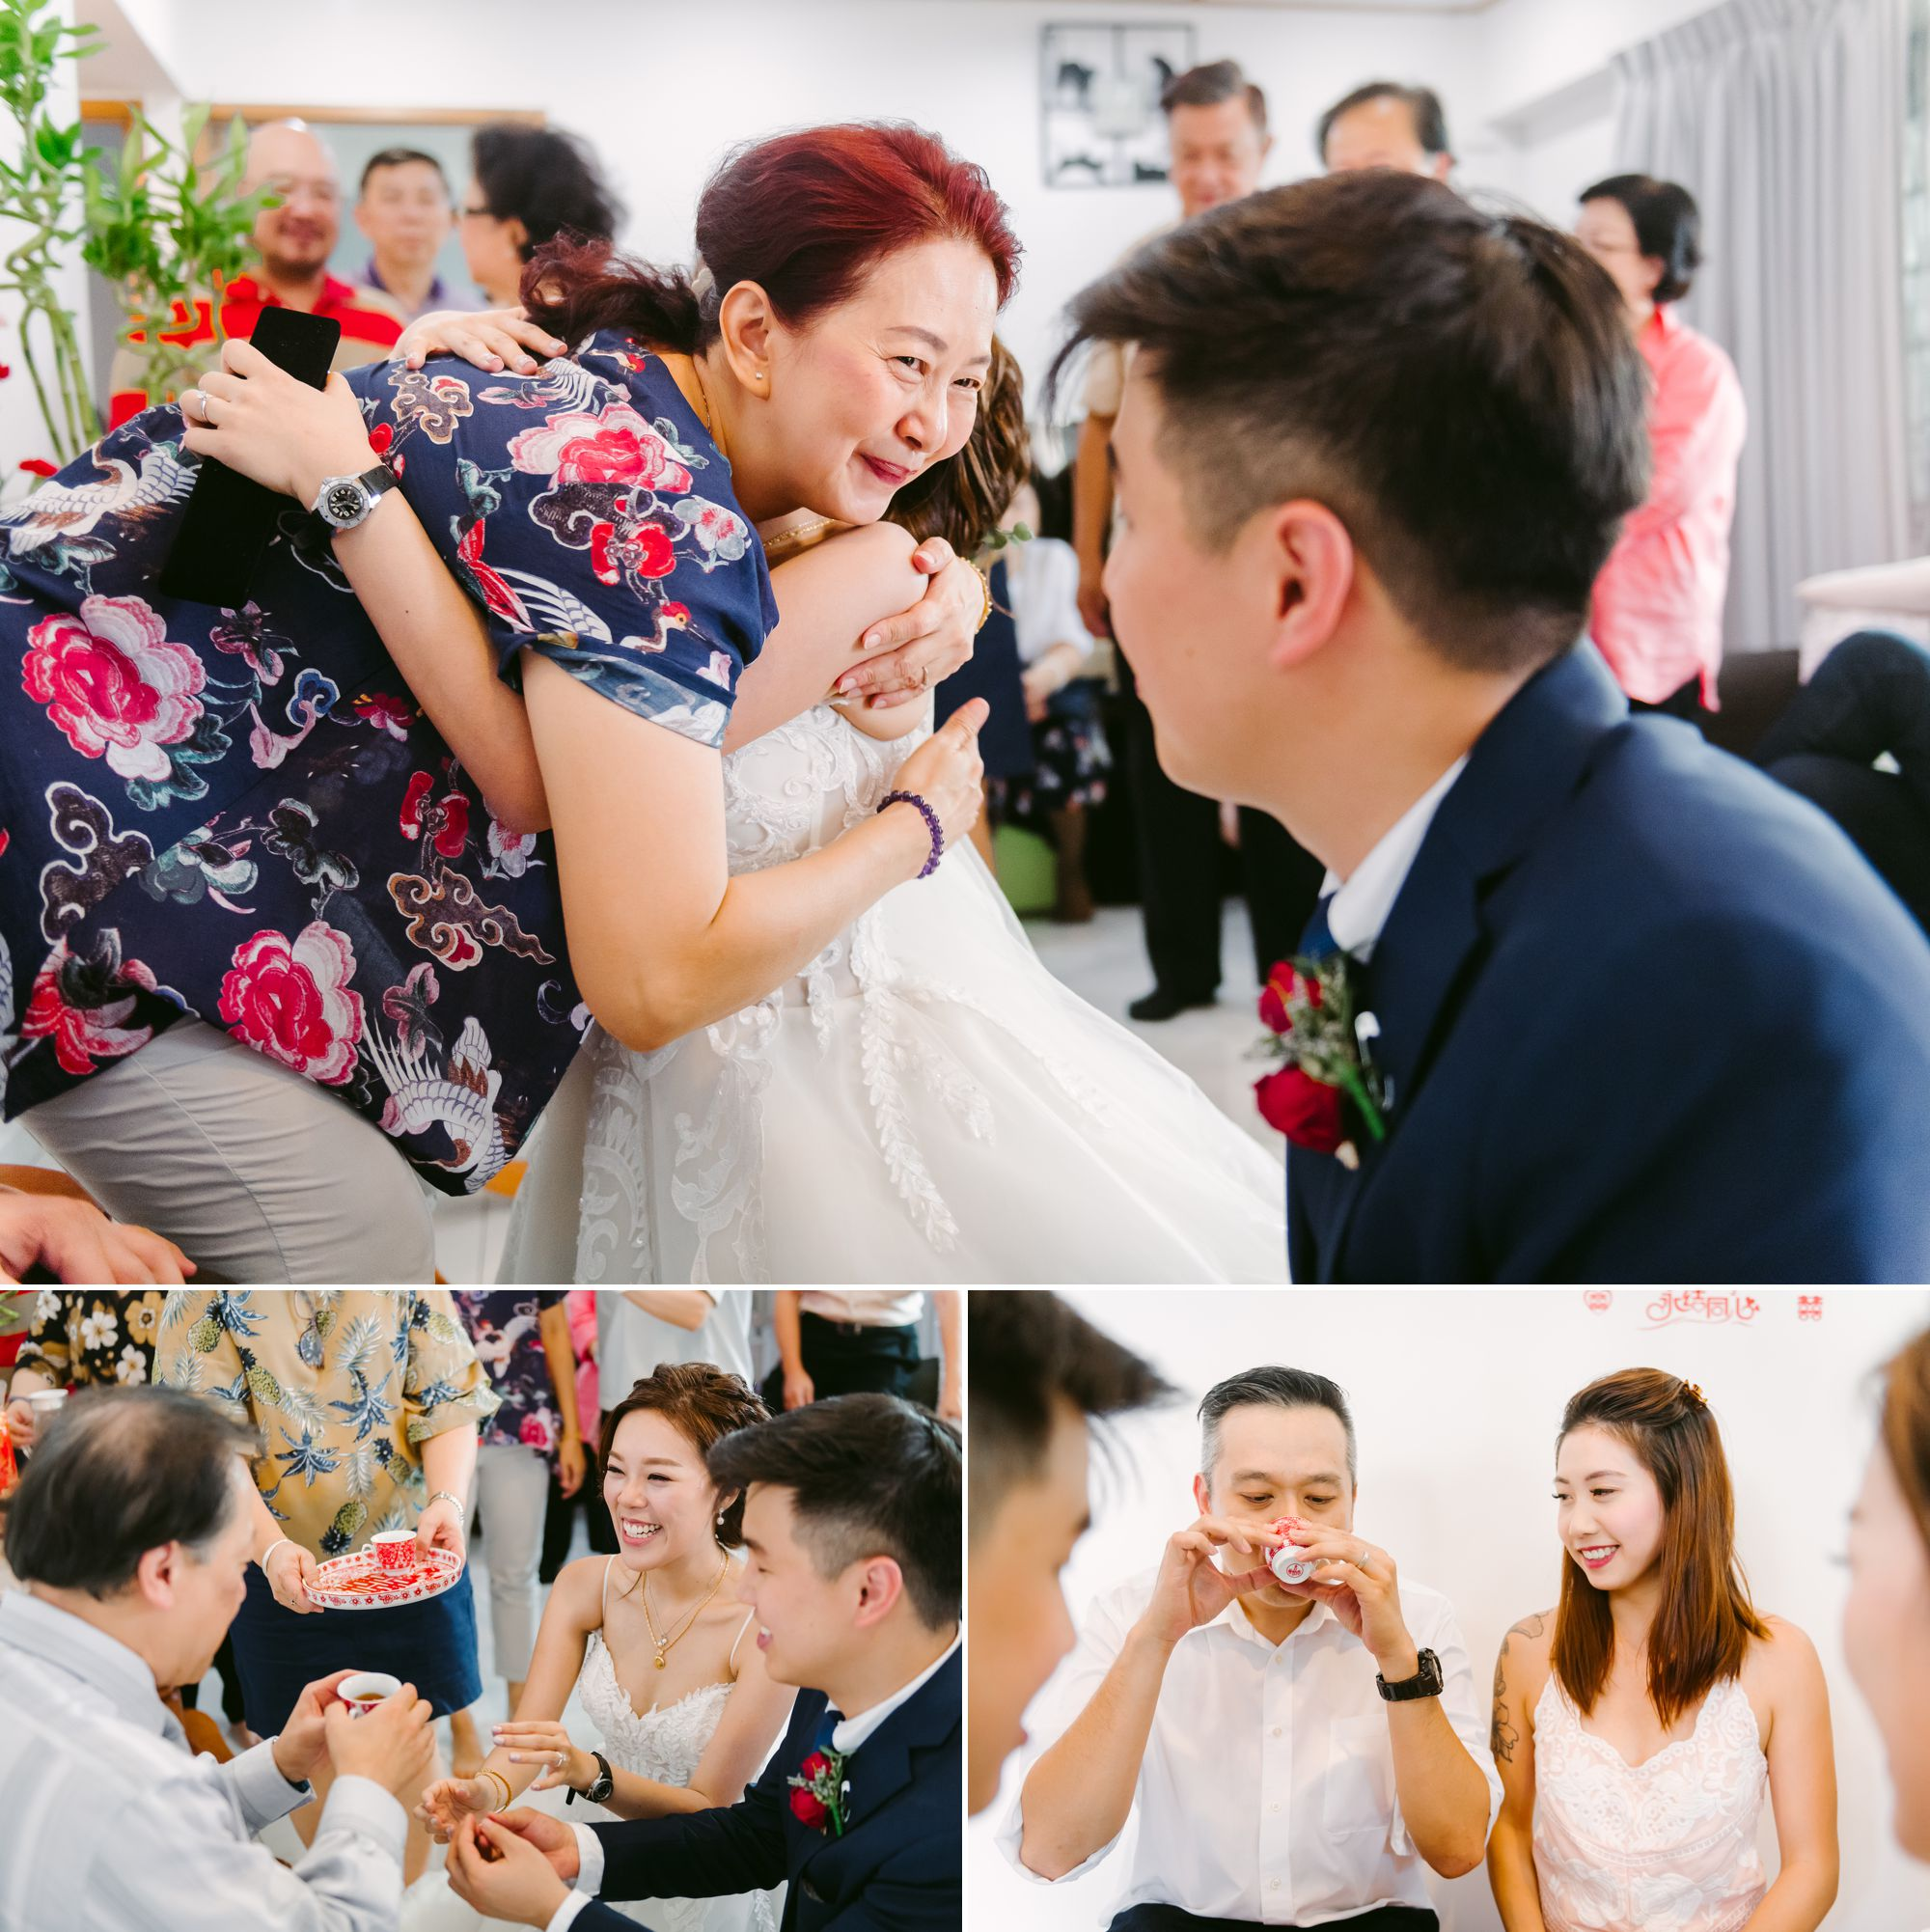 conrad_wedding_Singapore_ 27.jpg